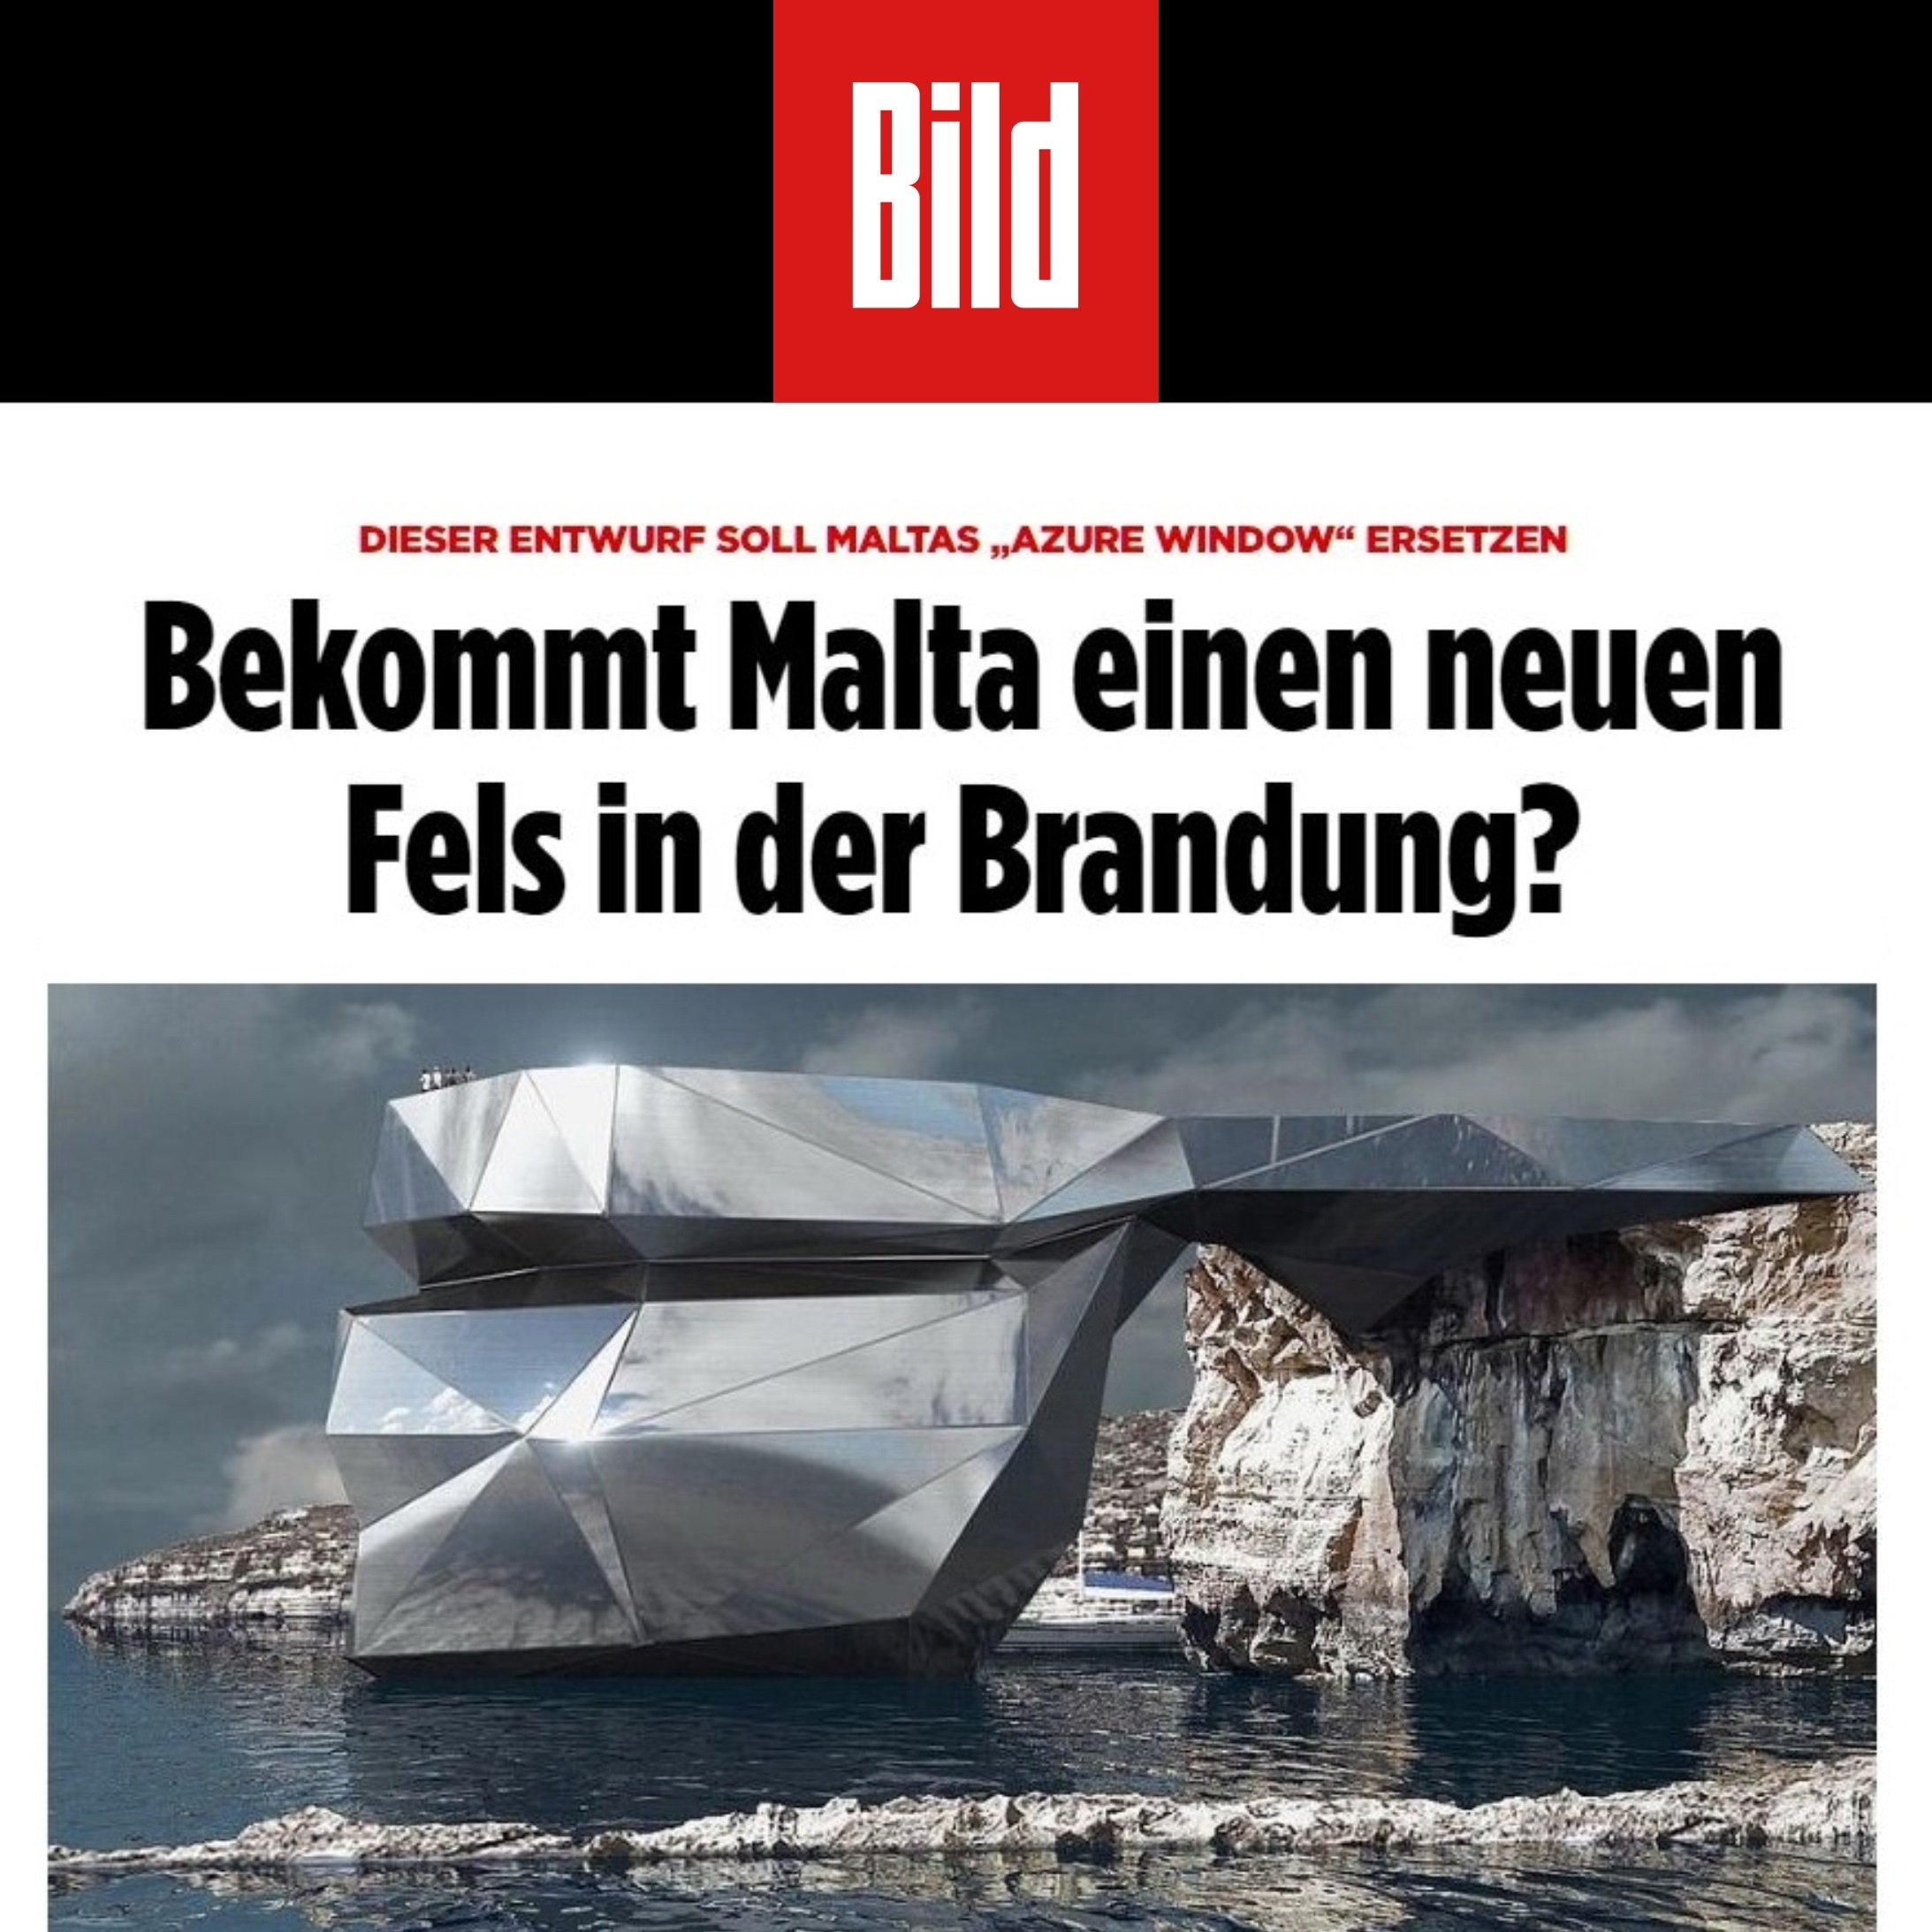 BILD GERMANY